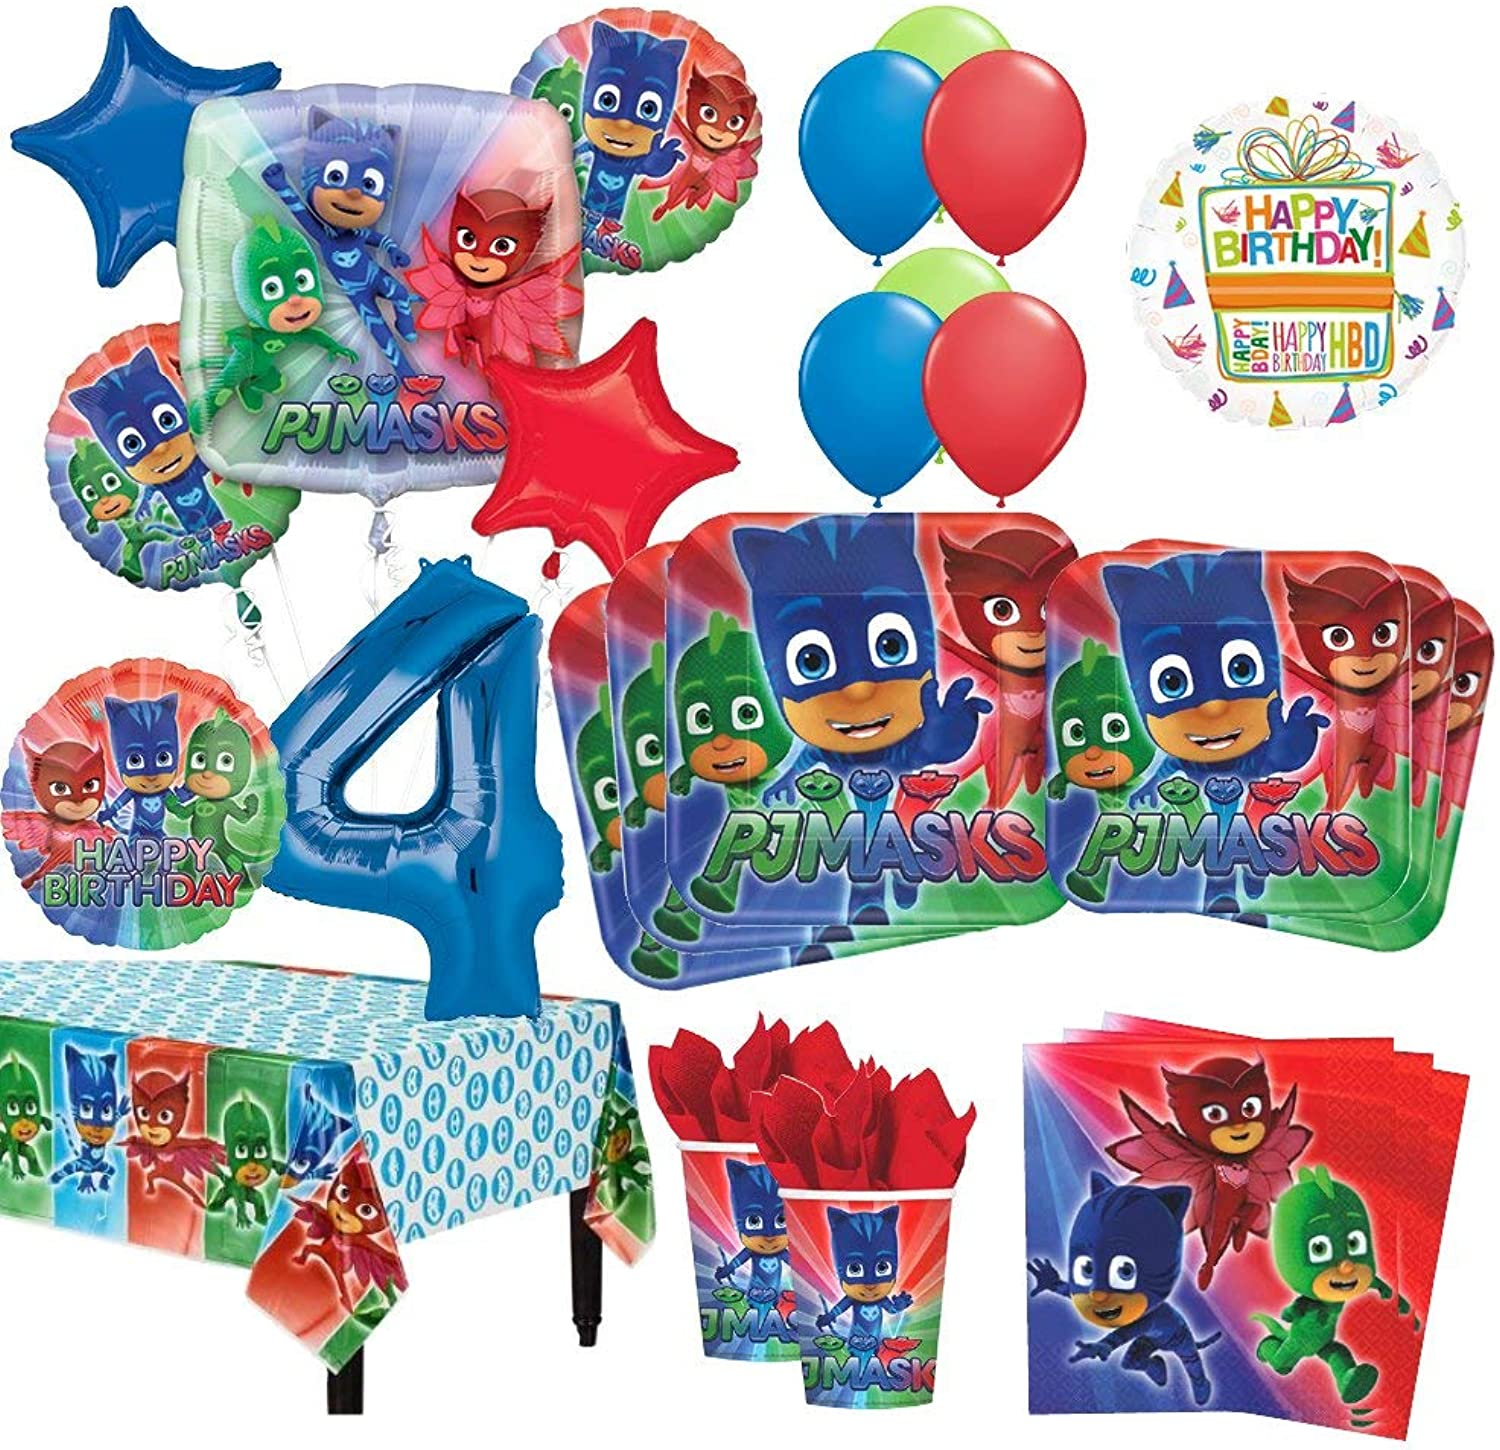 Mayflower Products PJ Masks 4th Birthday Party Supplies 16 Guest Kit and Balloon Bouquet Decorations 96pc